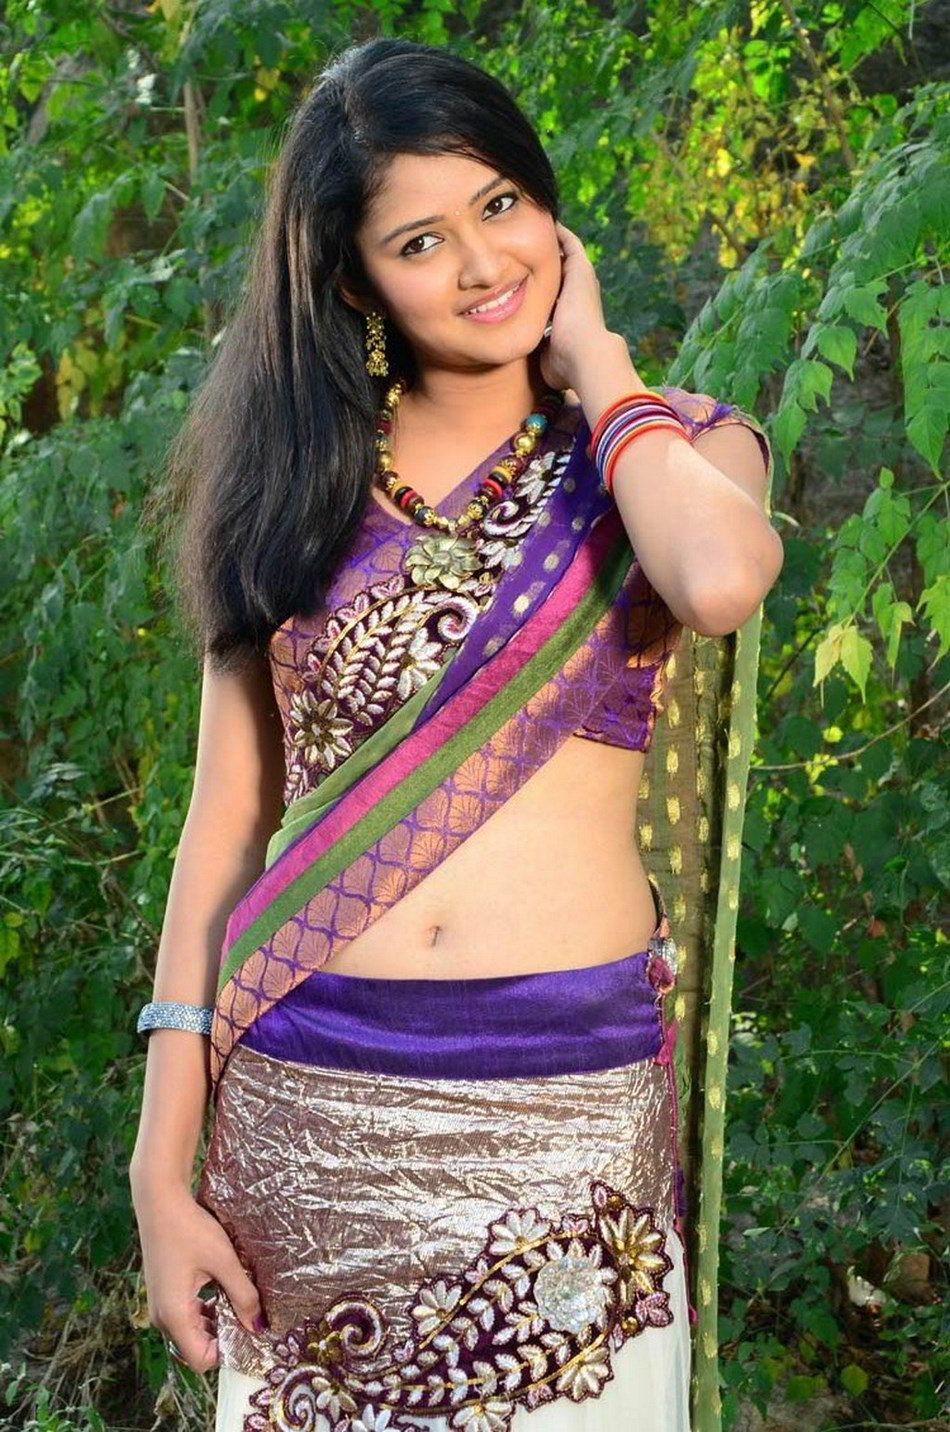 South Actress Hot Wallpapers High Resolution - Hot Actress In South Saree , HD Wallpaper & Backgrounds